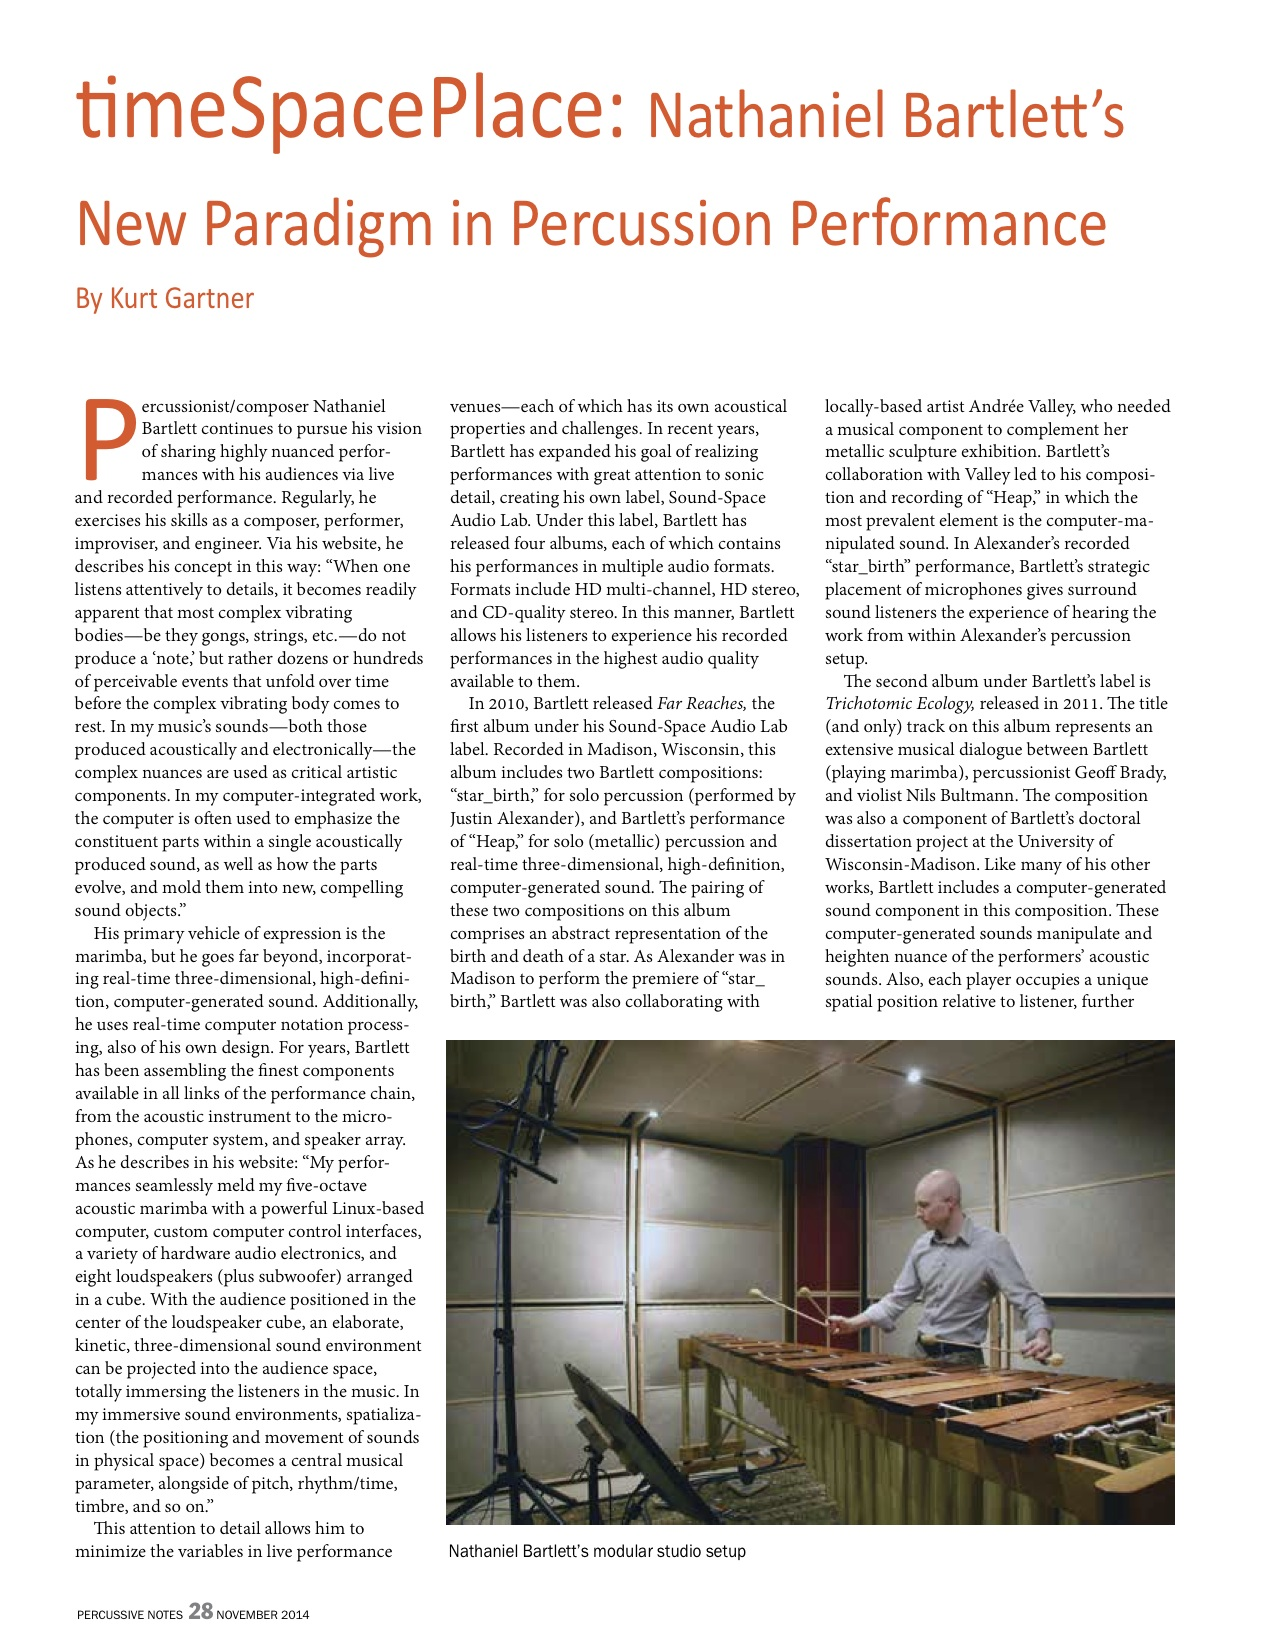 timeSpacePlace: Nathaniel Bartlett's New Paradigm in Percussion Performance